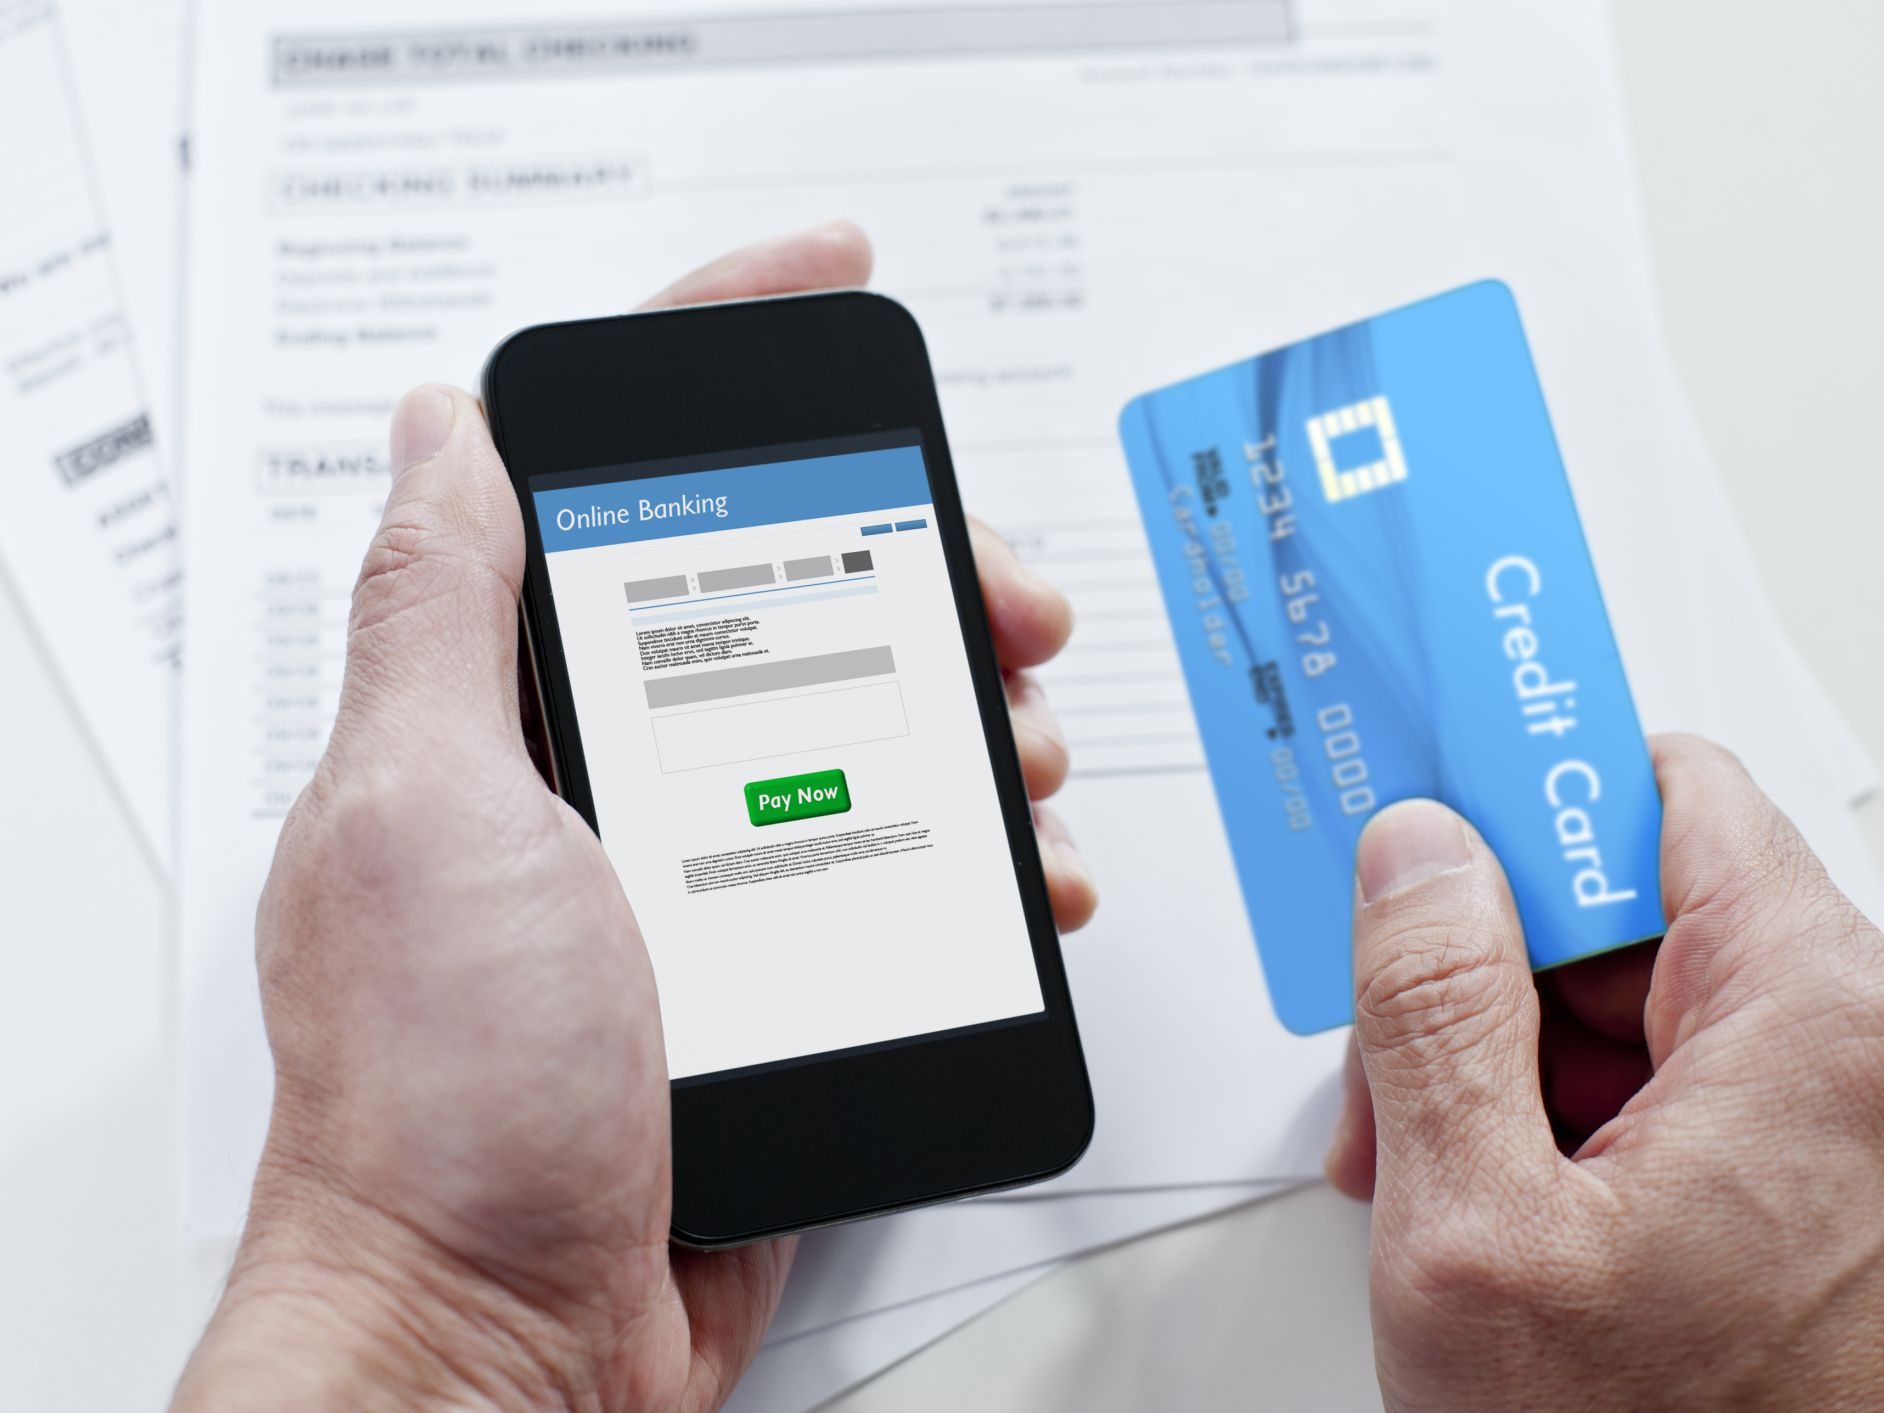 7 Must-Have Mobile Apps for Managing Your Credit